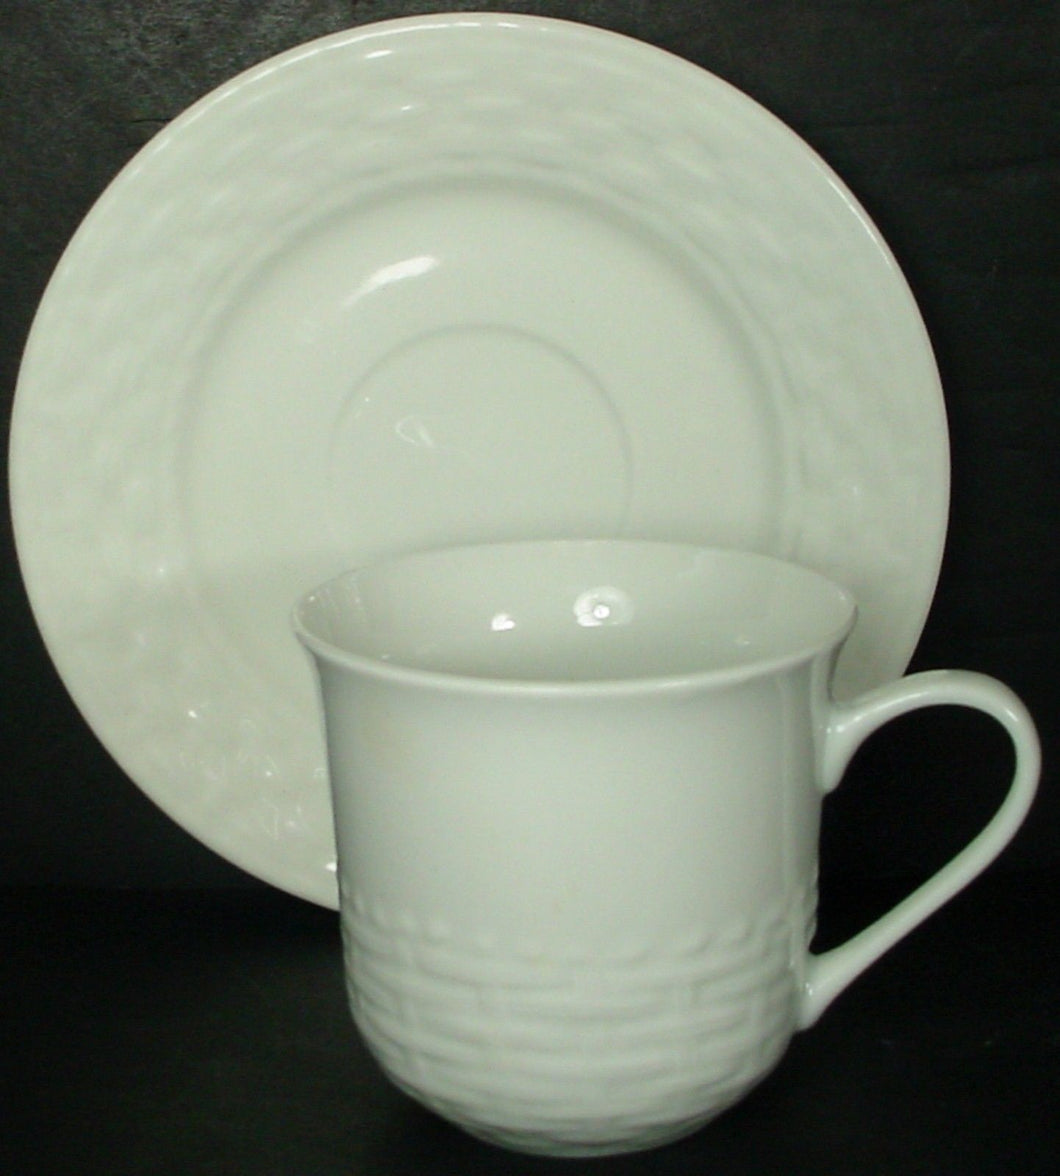 GIBSON DESIGNS china SARASOTA pattern CUP & SAUCER Set Cup 3